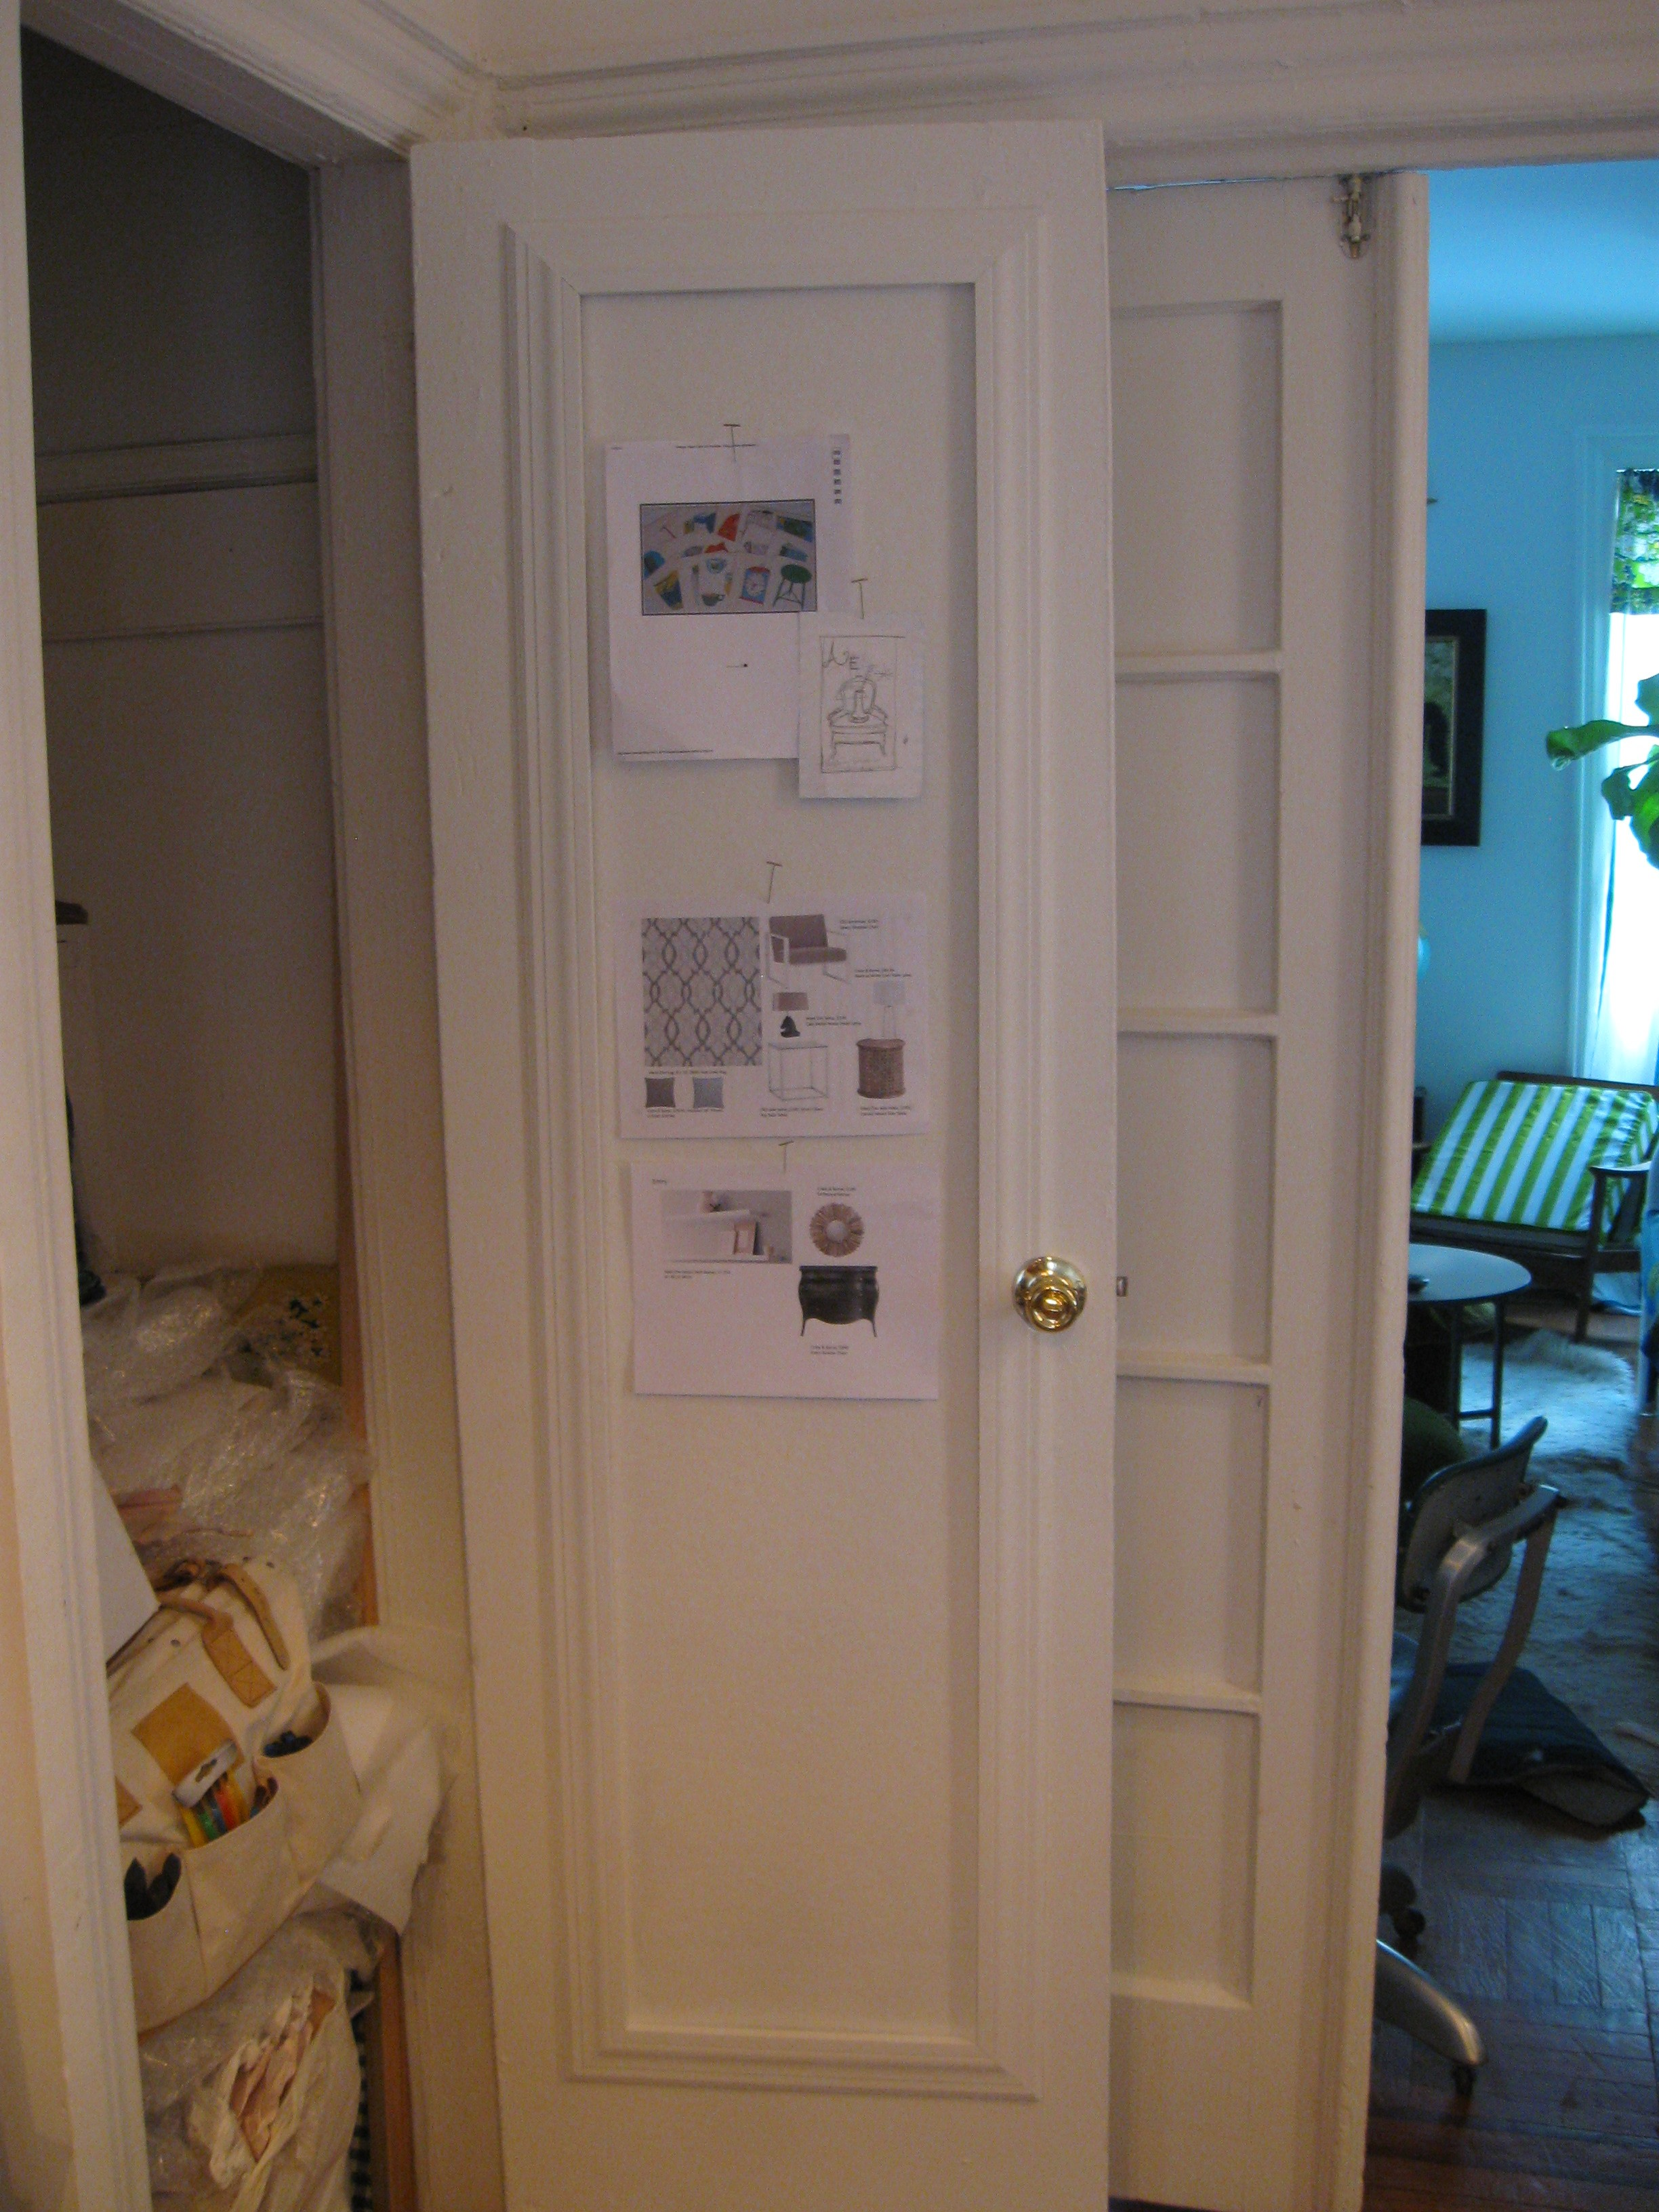 An image of the backside of closet door with competed bulletin board